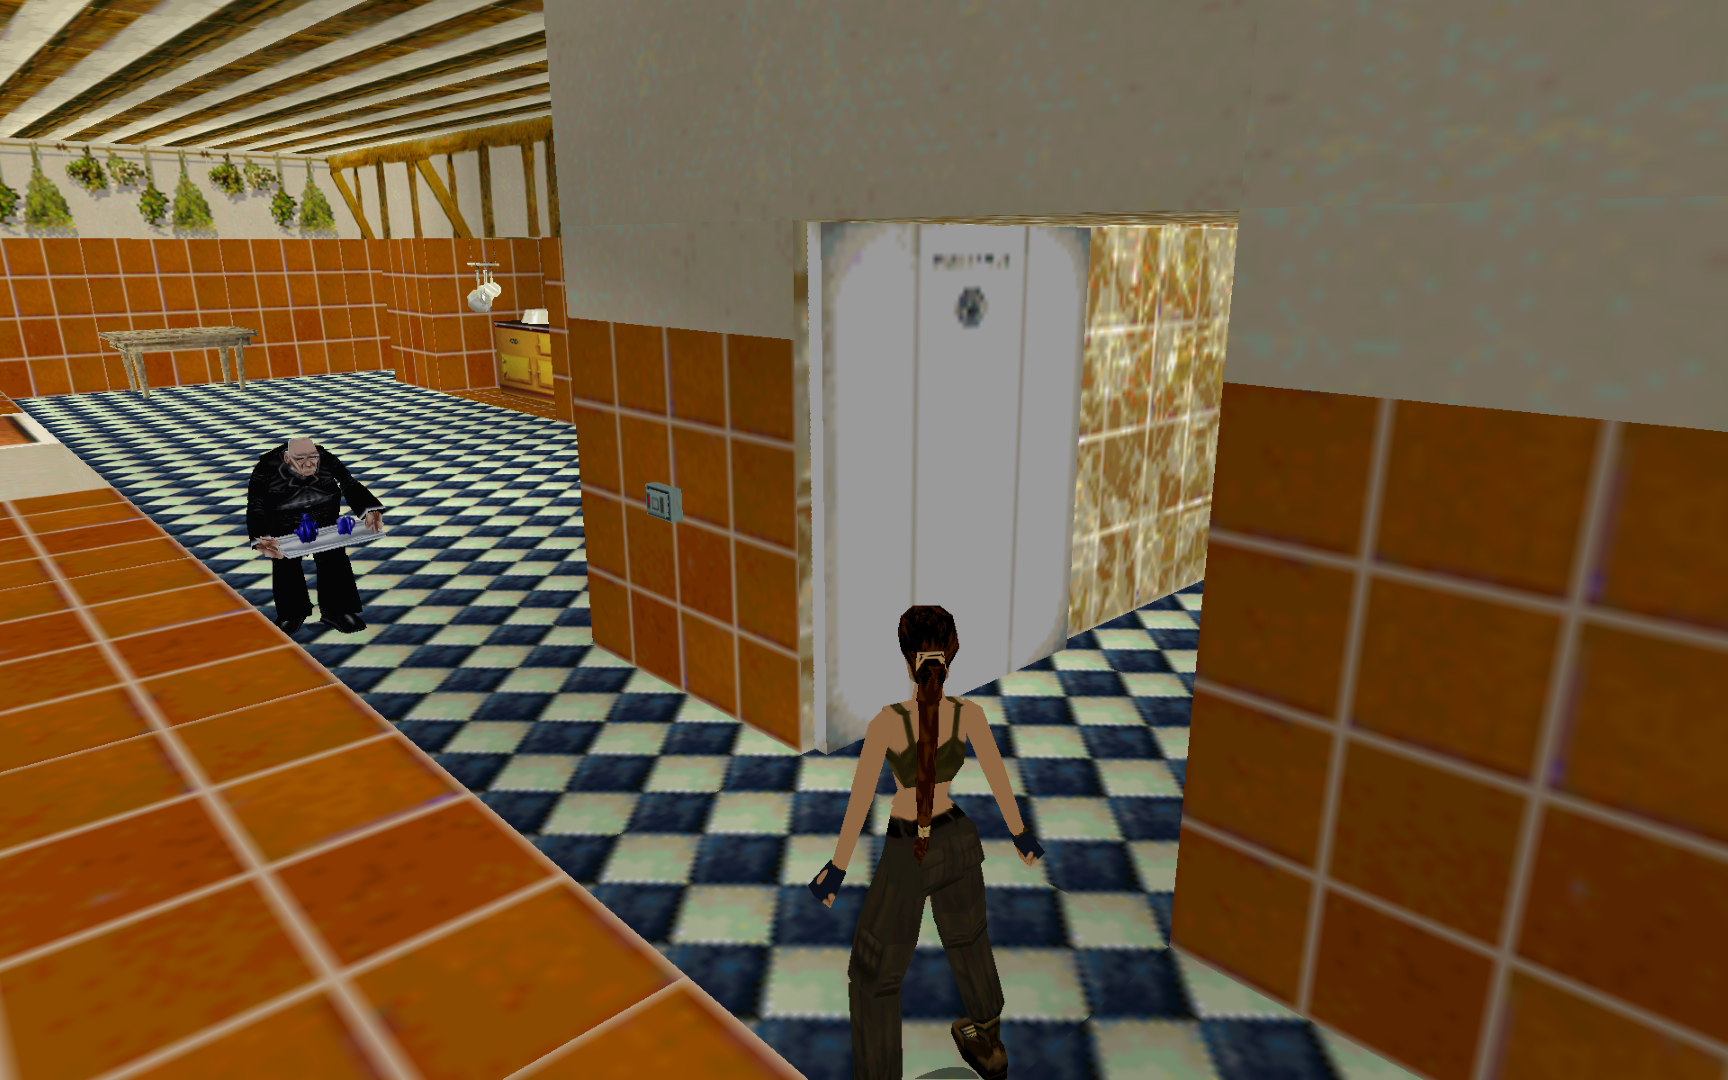 Locking Winston the Butler in the freezer in Tomb Raider 2